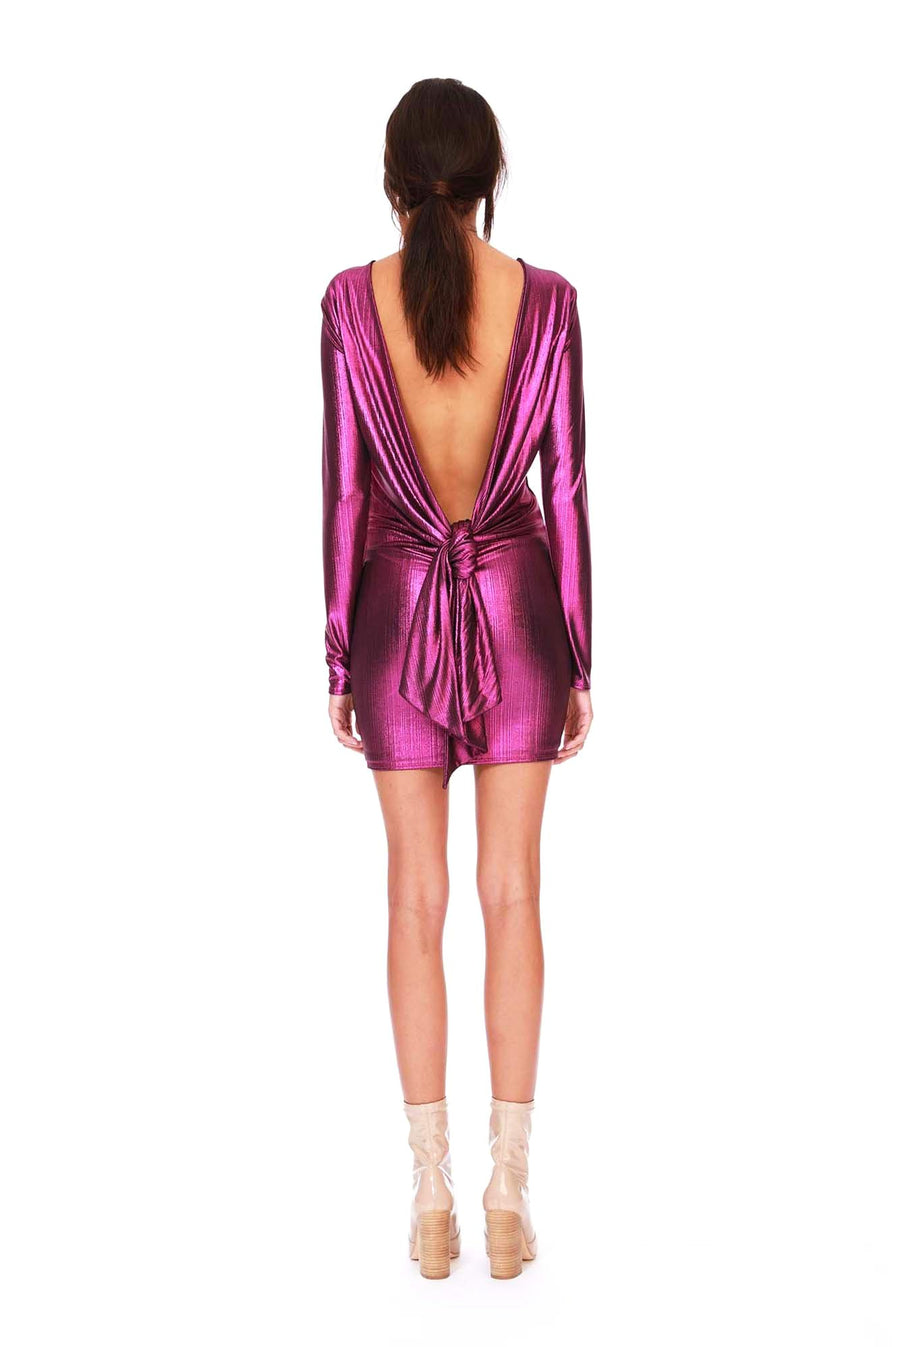 Bertie Dress - Magenta Foil